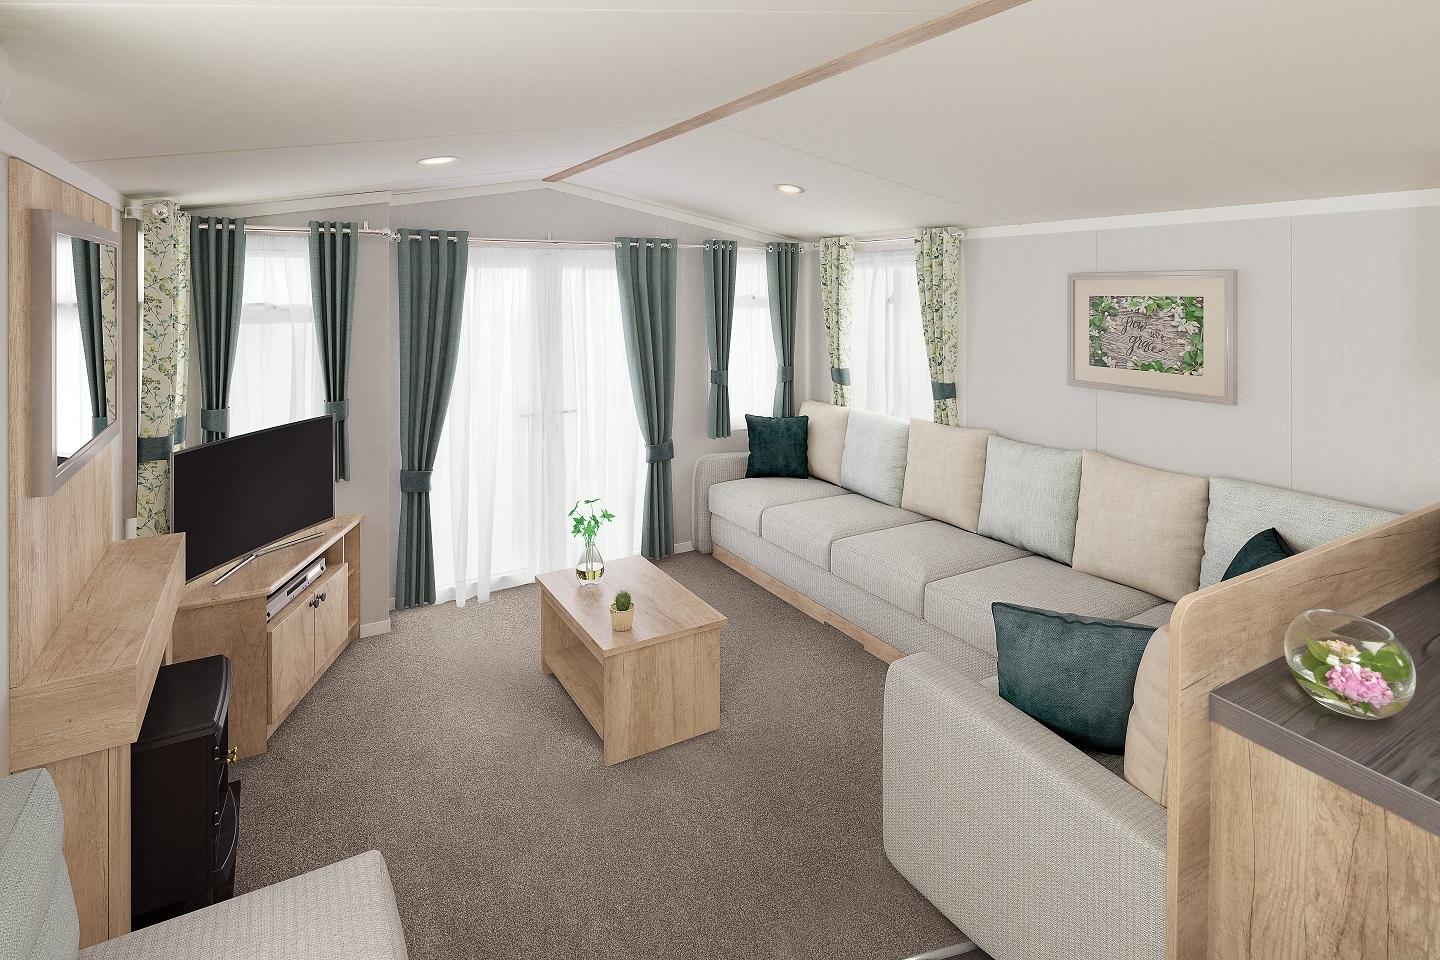 Swift Burgundy: New Static Caravans and Holiday Homes for Sale, Adderstone, Belford Large Image 1